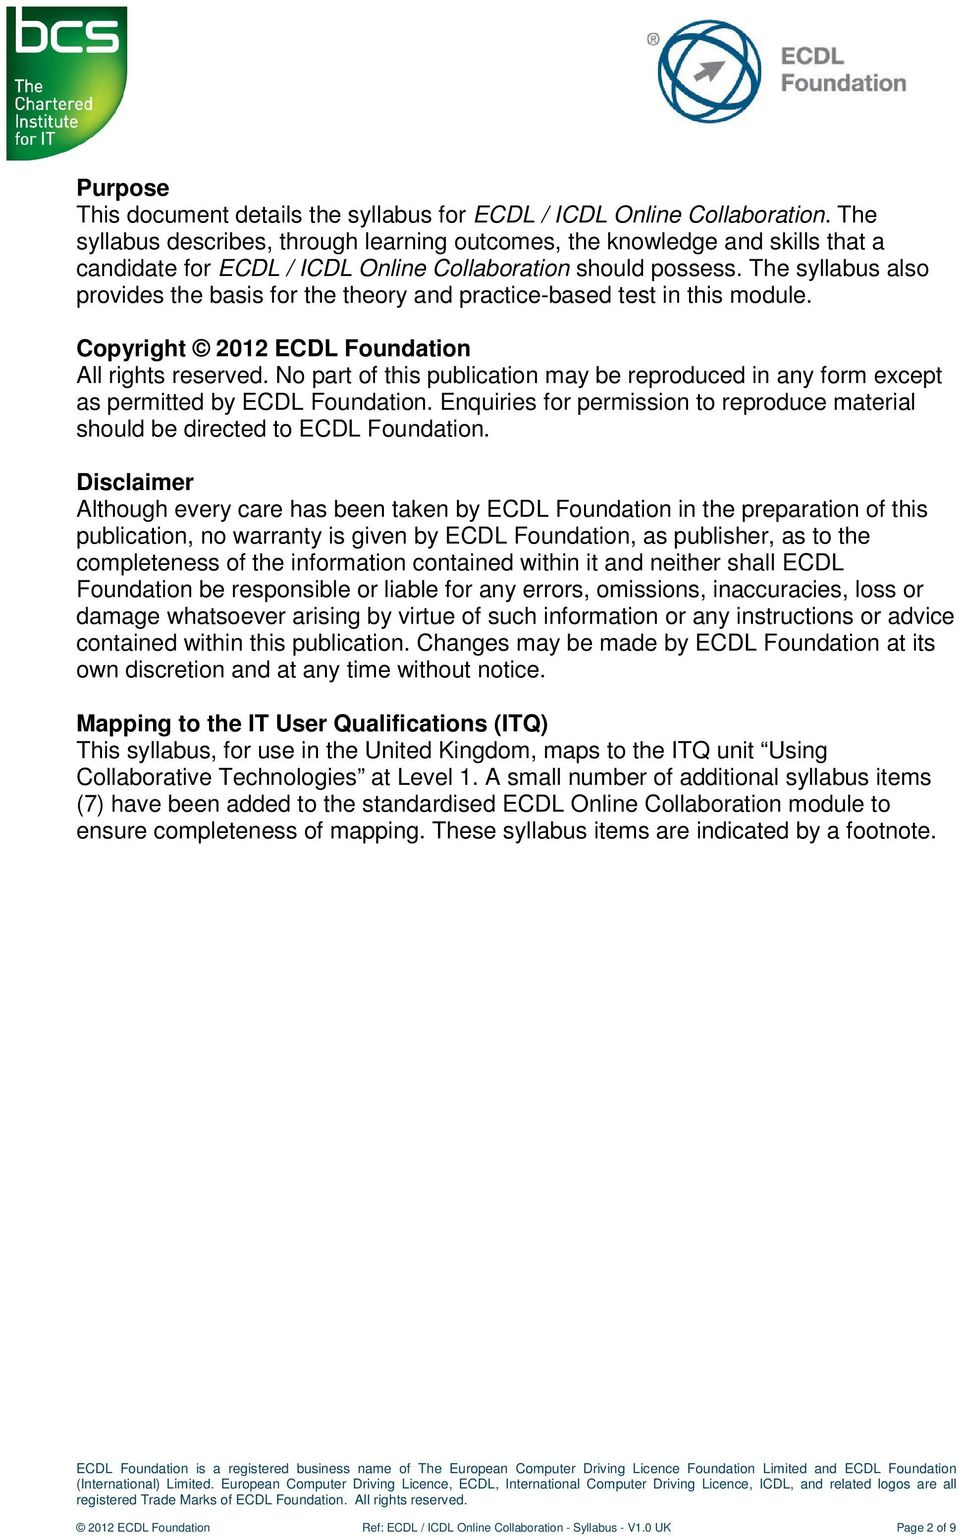 ecdl icdl online collaboration using collaborative technologies